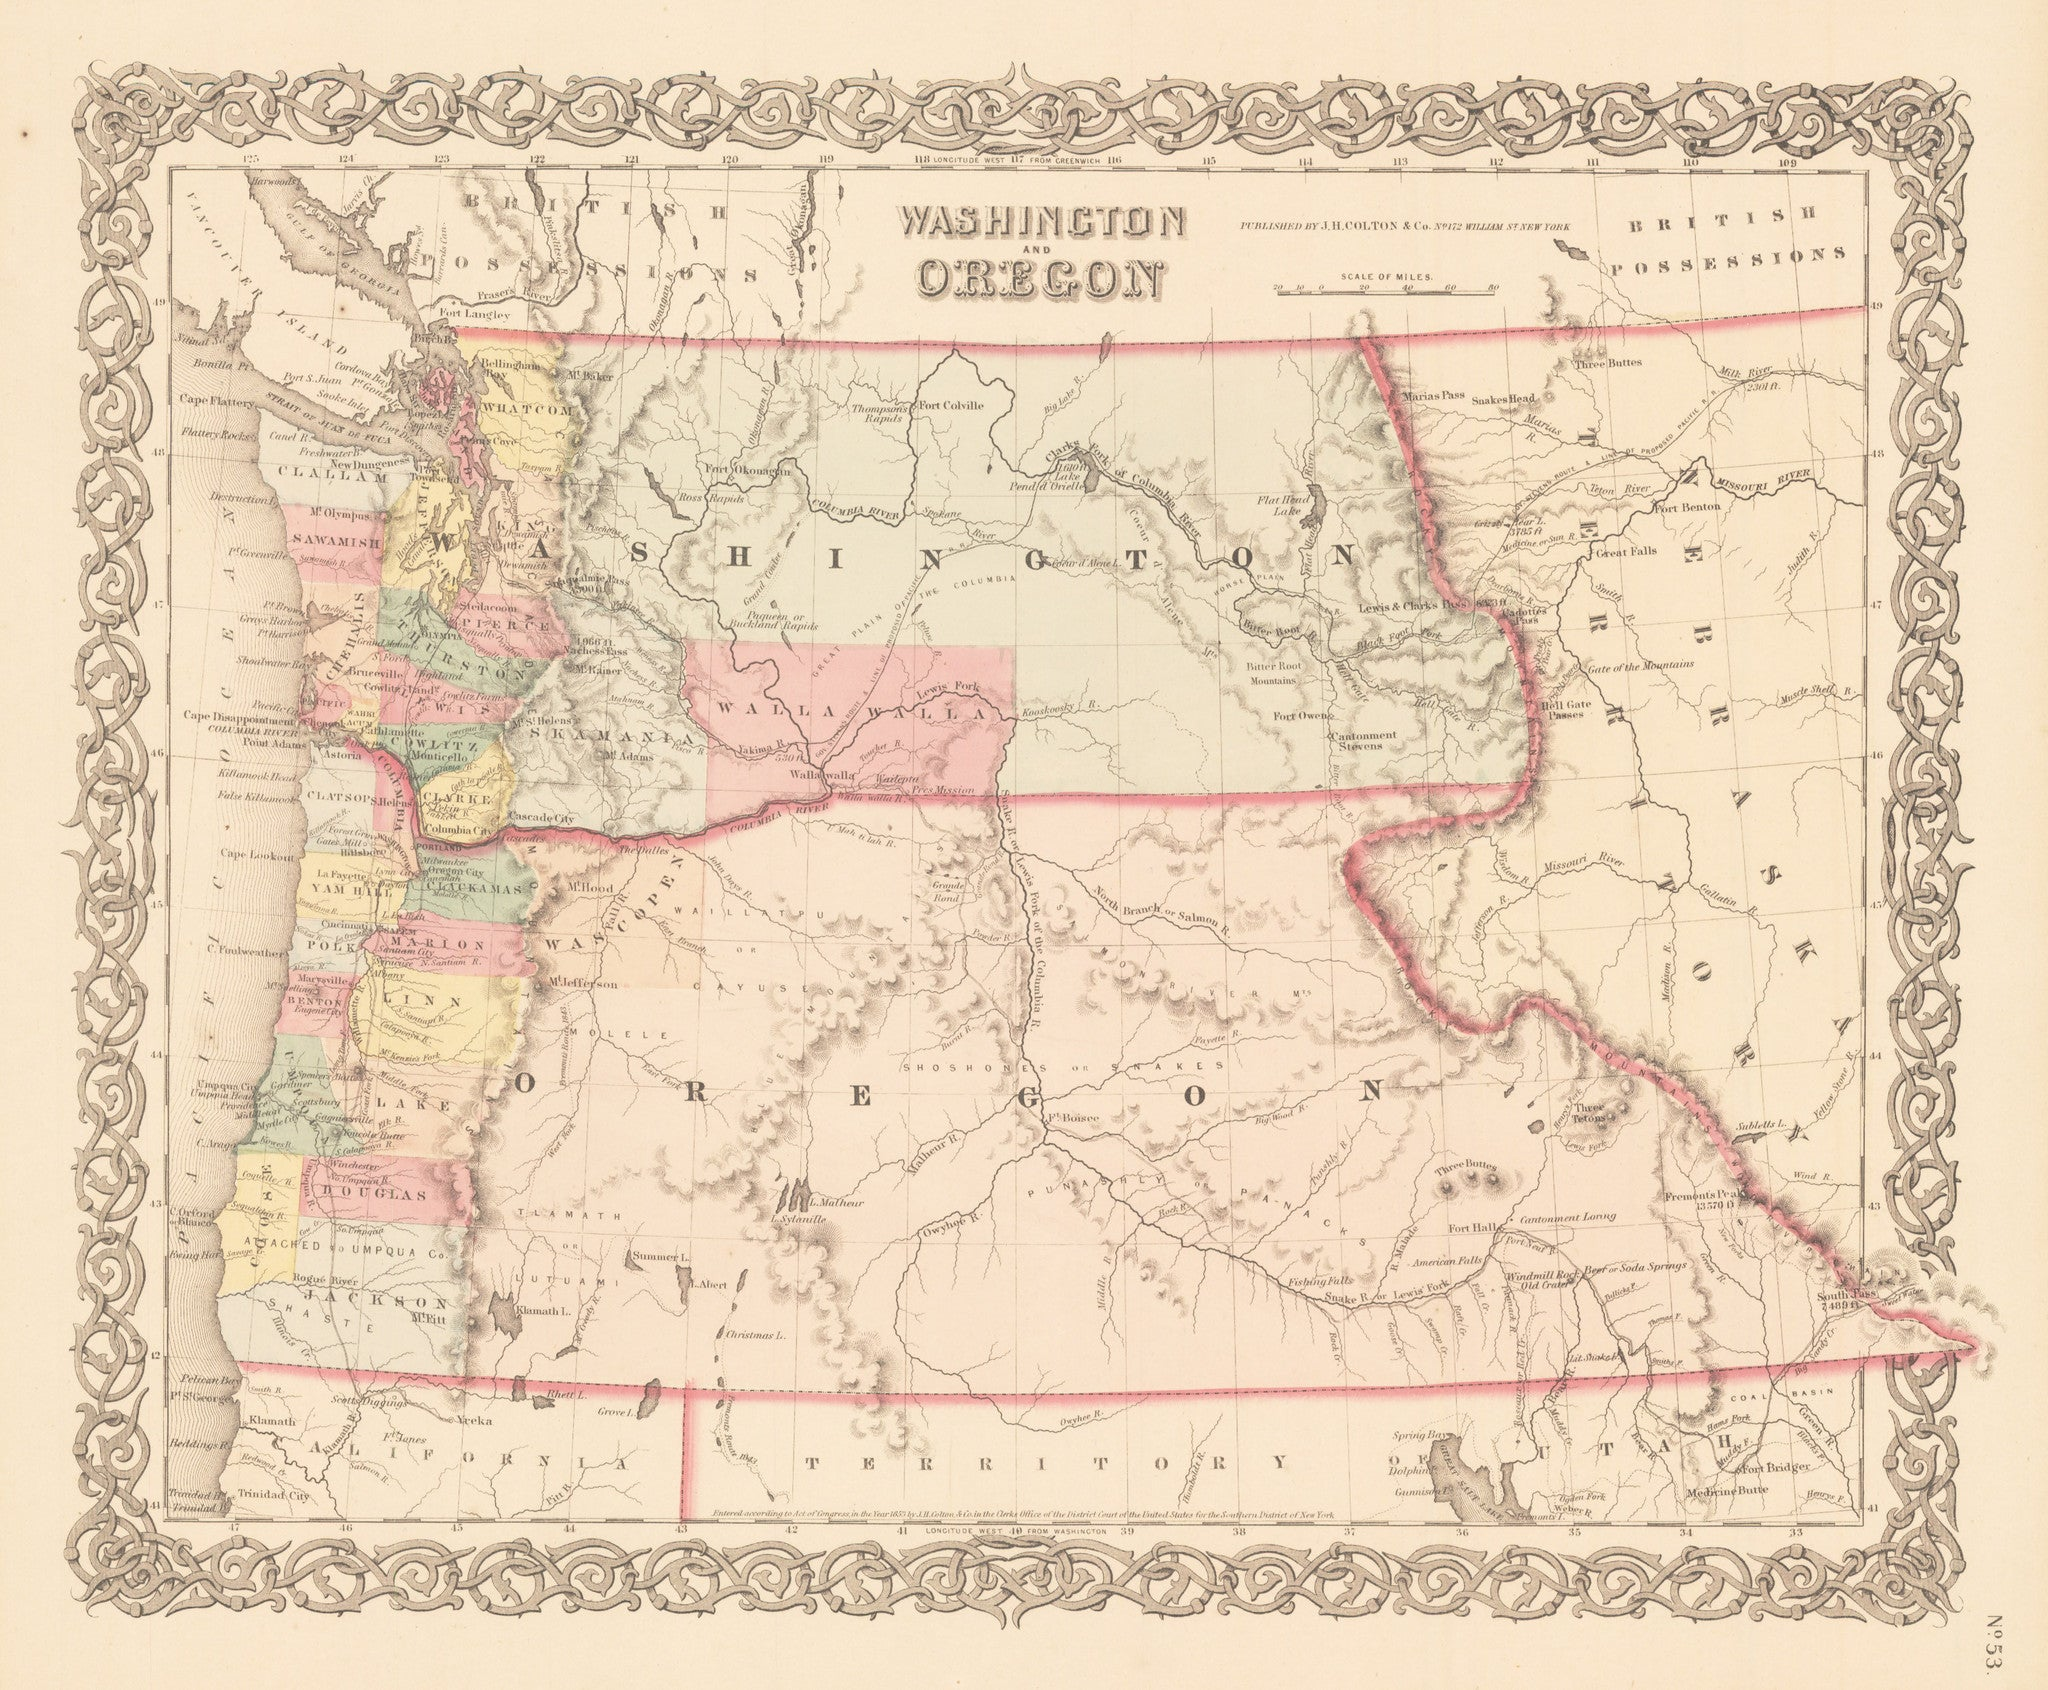 Antique, Vintage, Rare, map of Washington and Oregon by Colton 1856